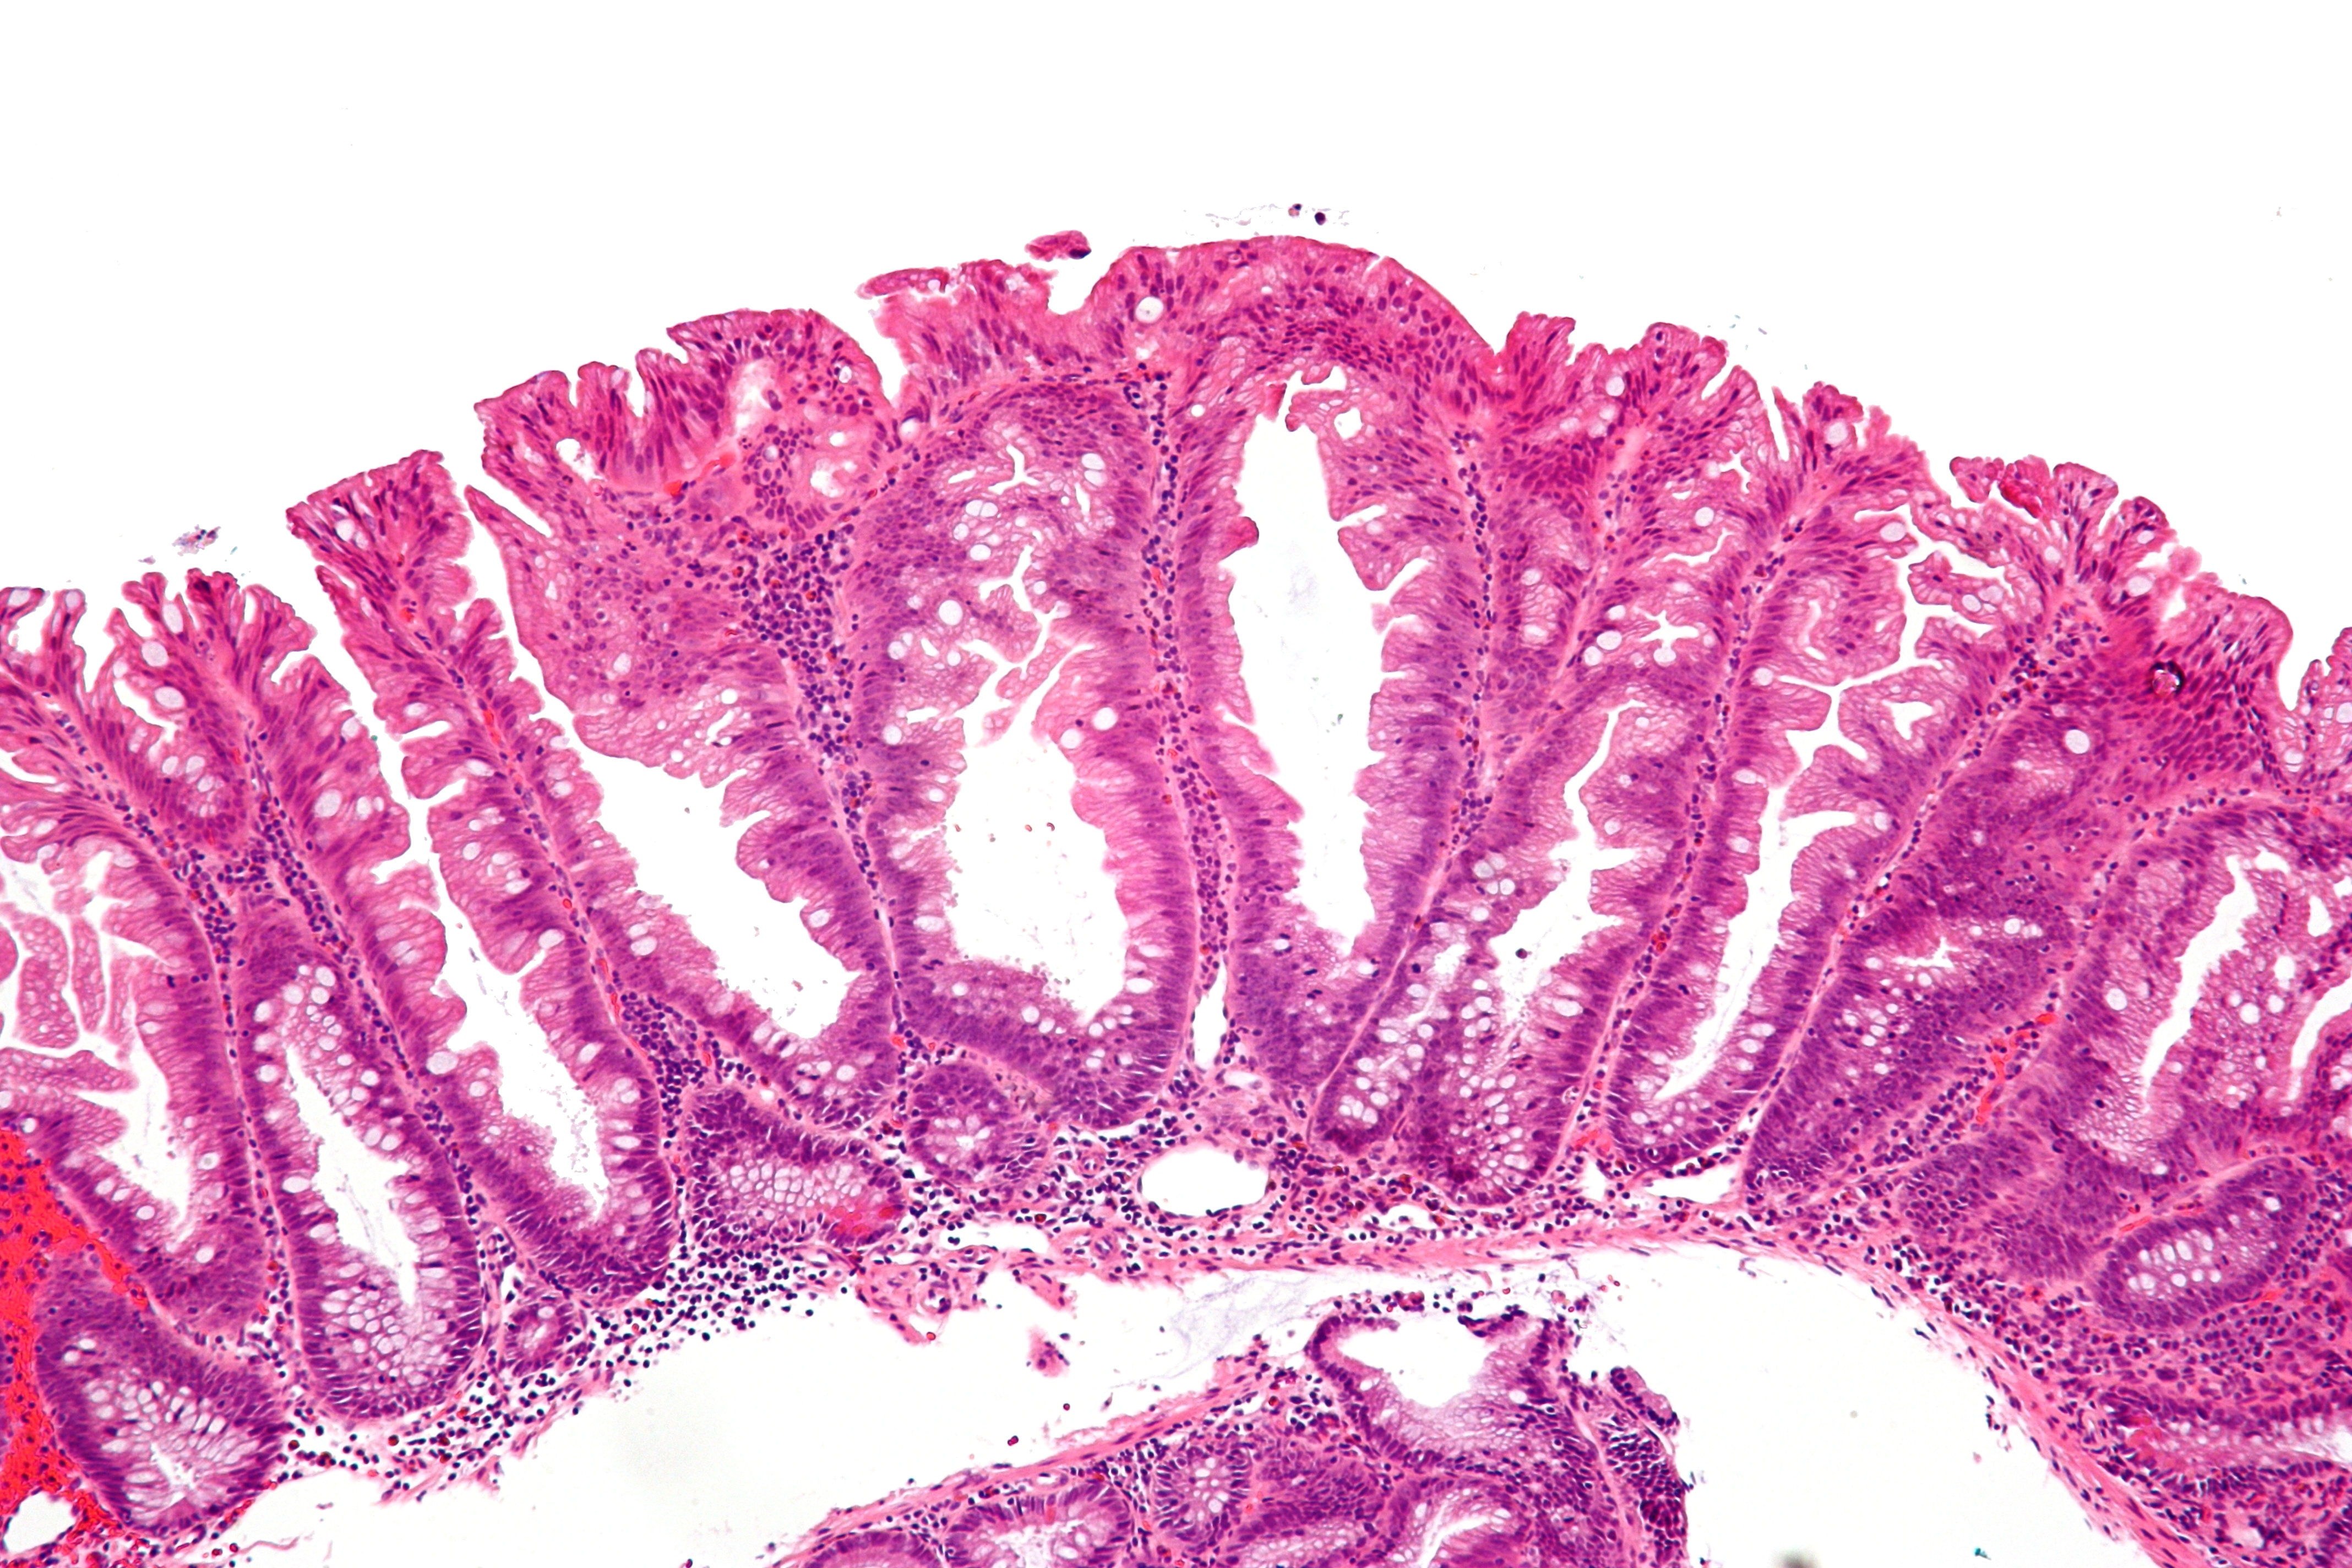 Sessile Serrated Adenoma Image Gallery sessile ...